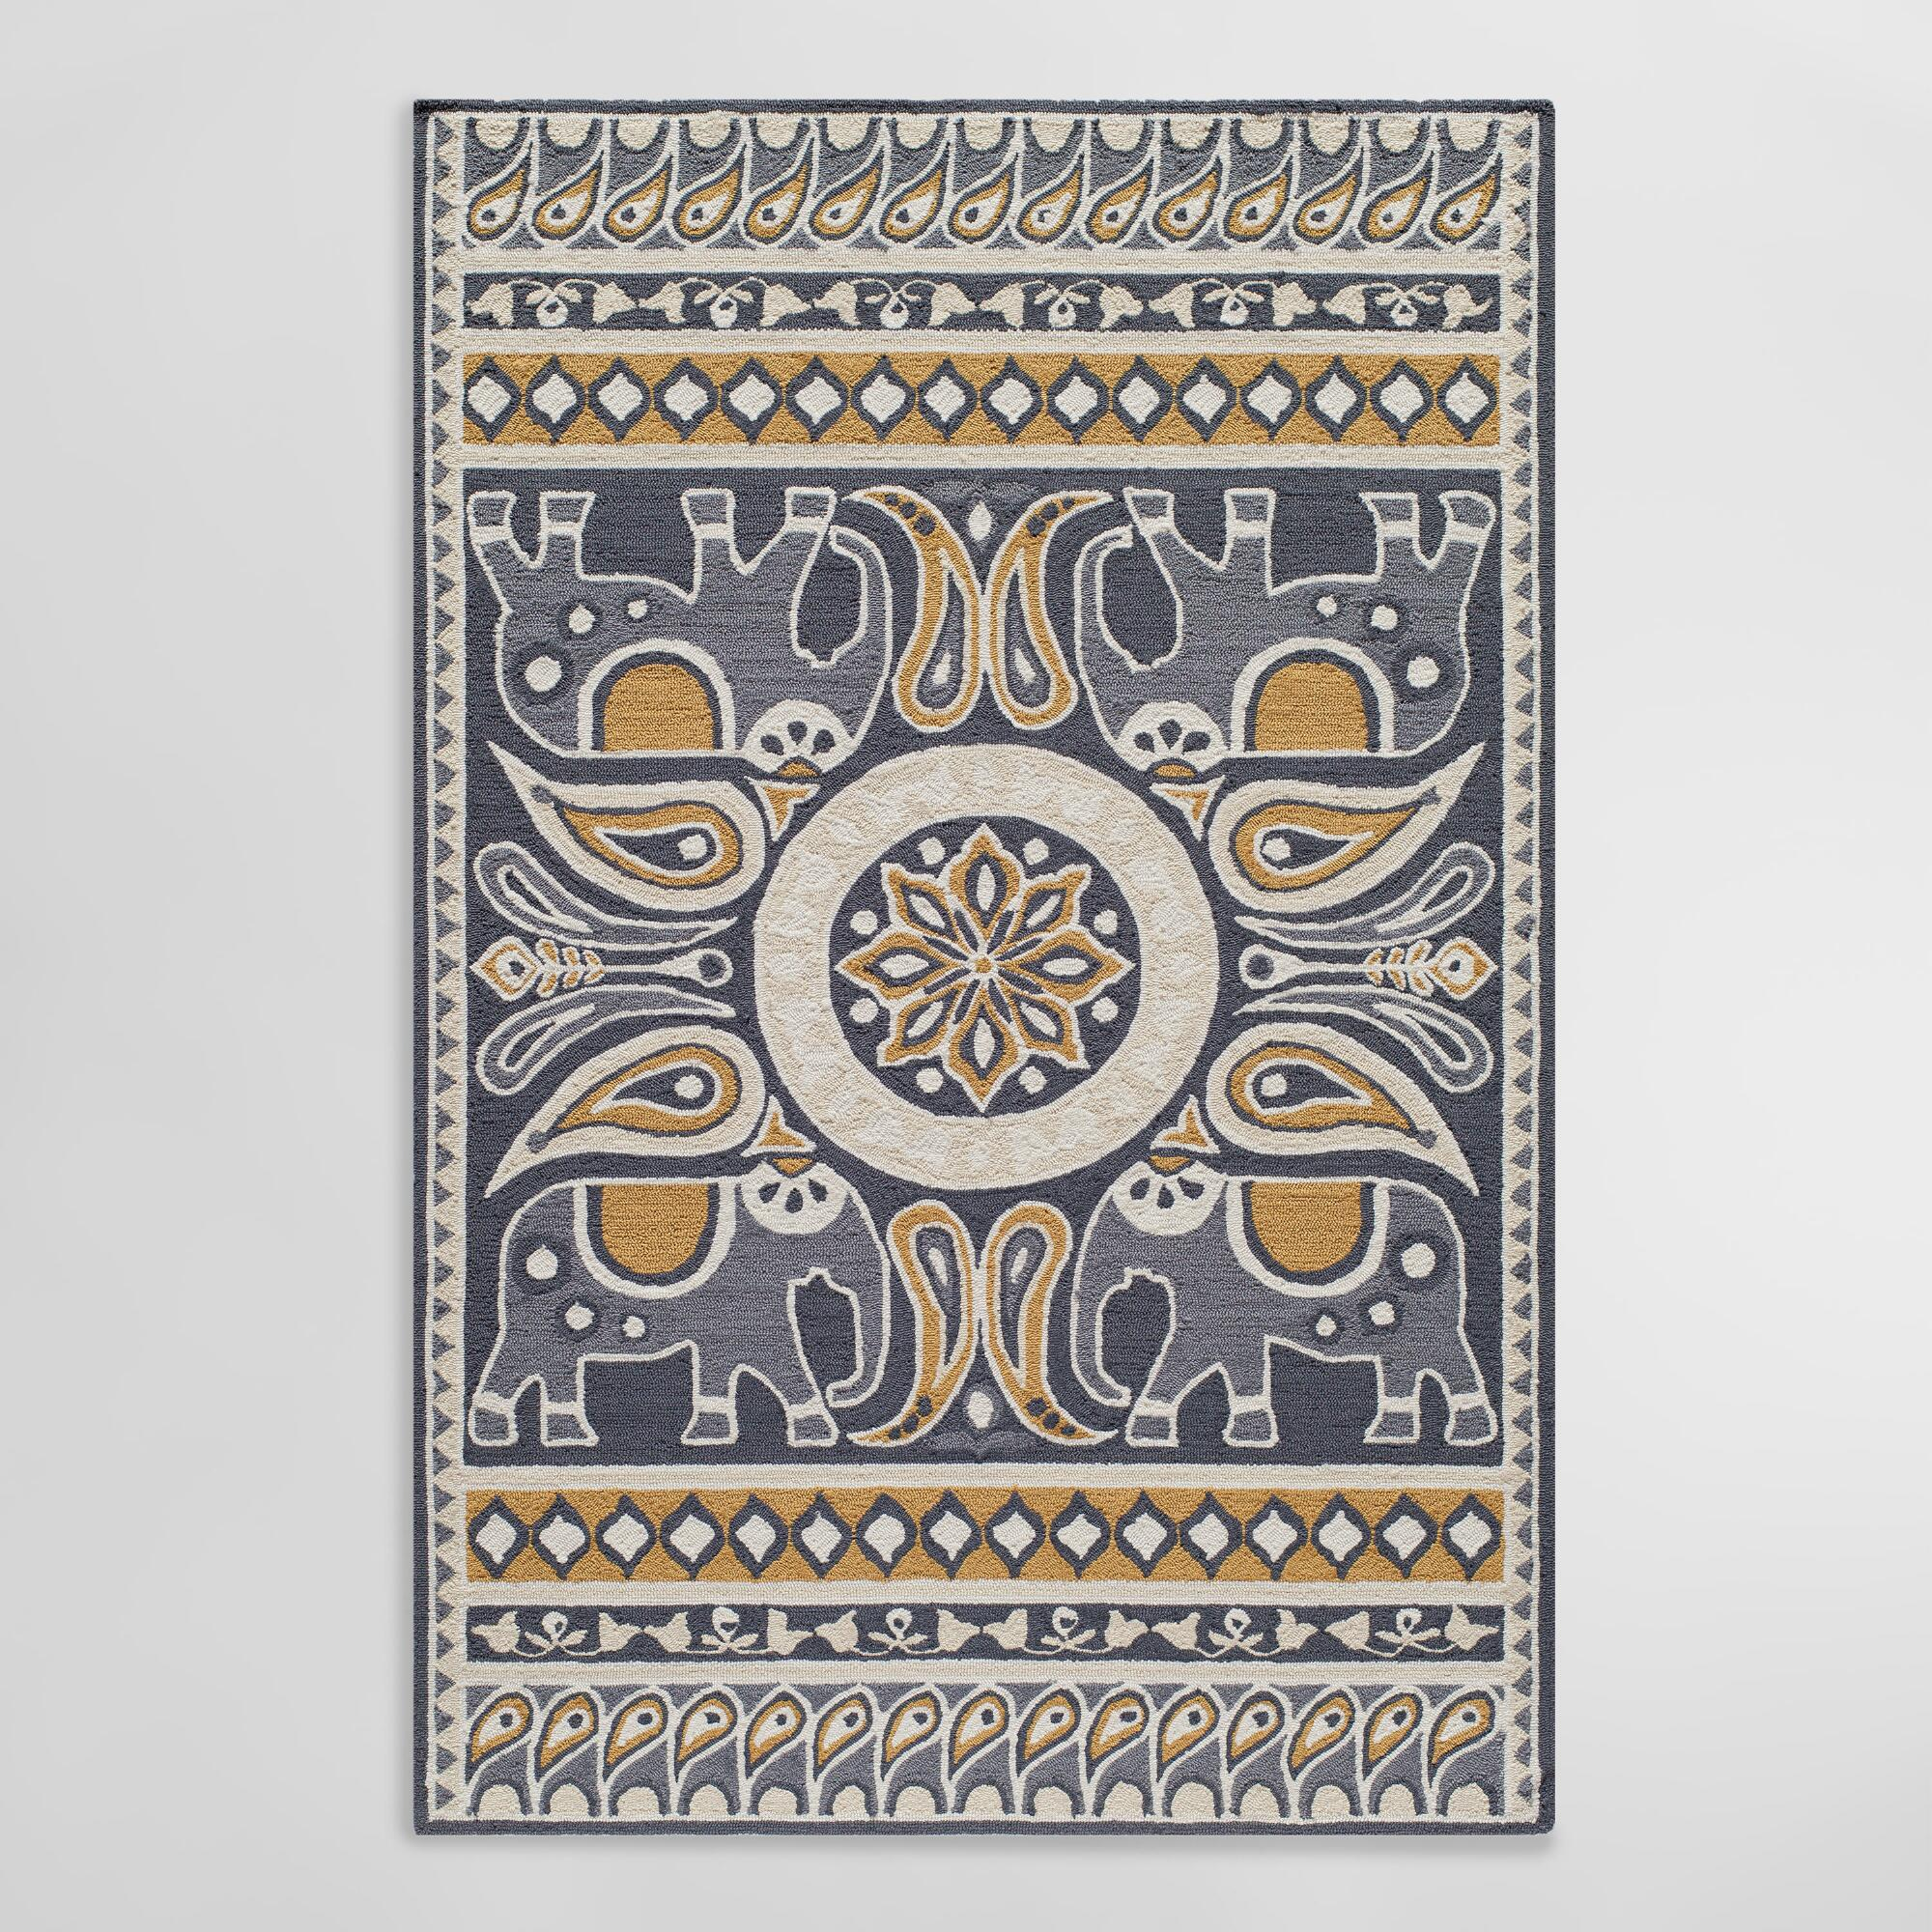 Gray Lanka Indoor Outdoor Patio Area Rug - 5Ftx7Ft by World Market 5Ftx7Ft